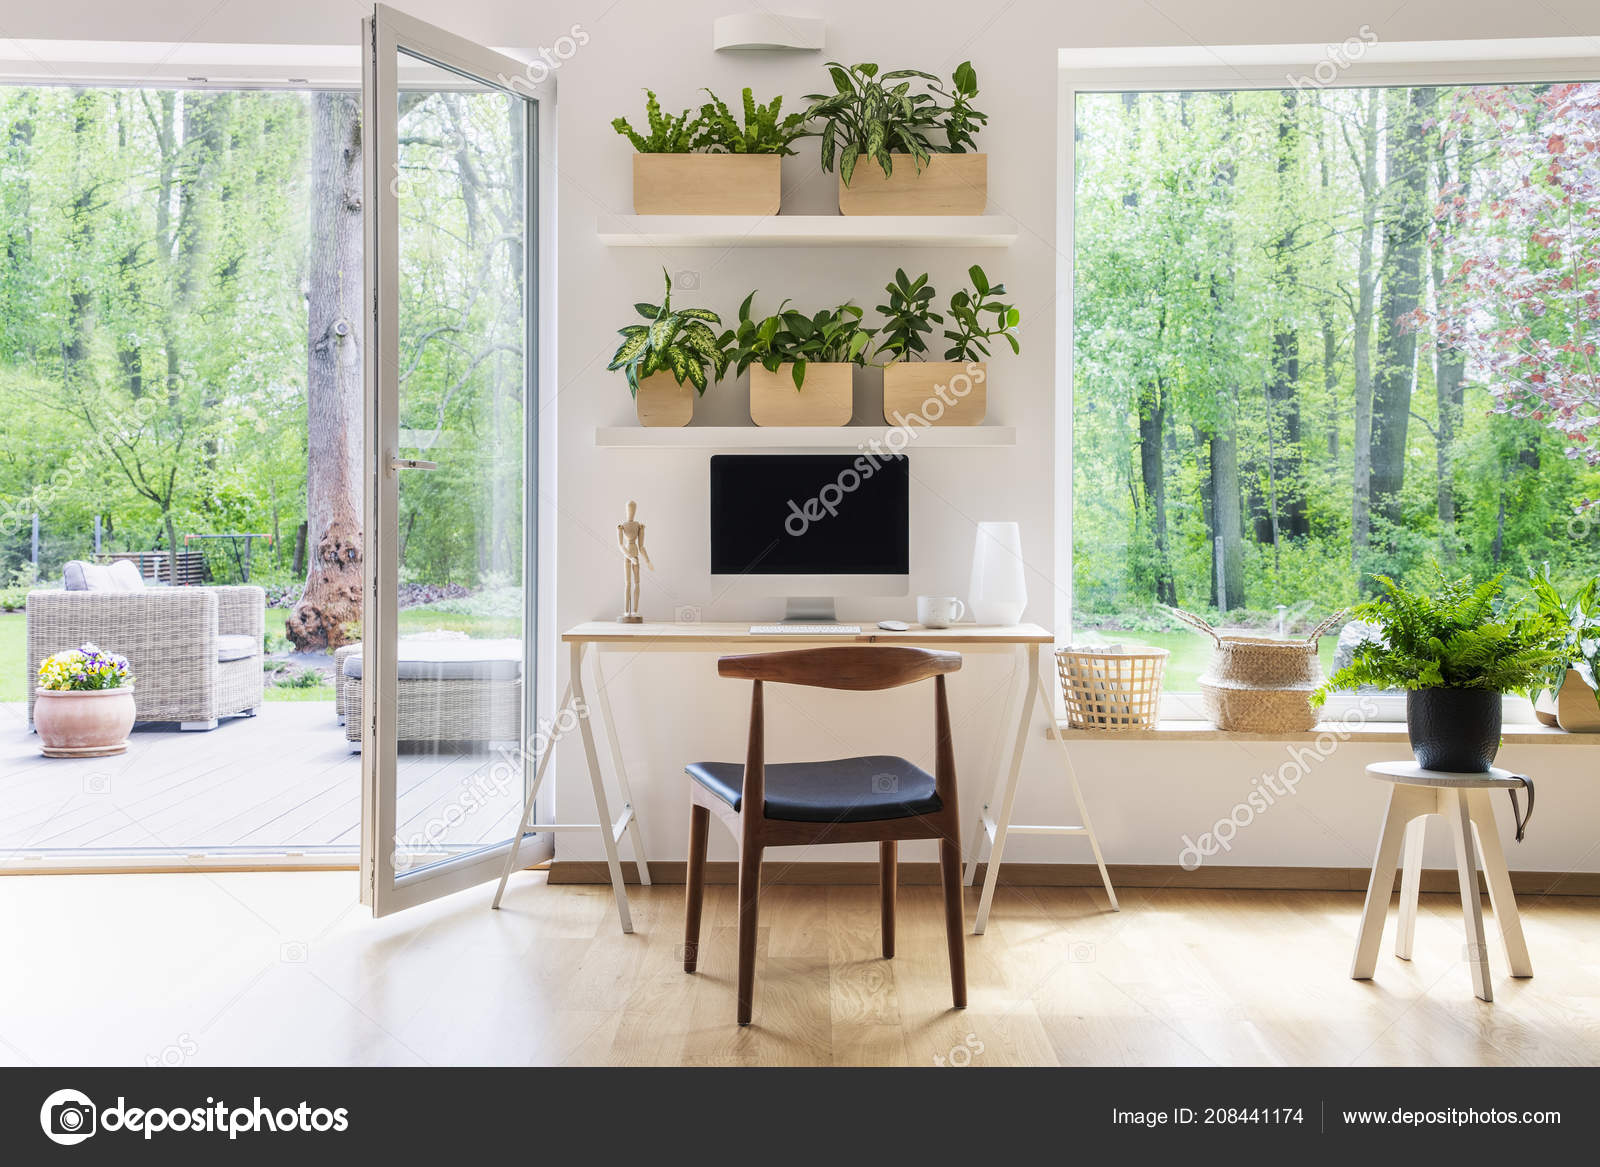 Zen home office with computer in a beautiful, spacious living room interior  with plants and an outside view through big windows 9